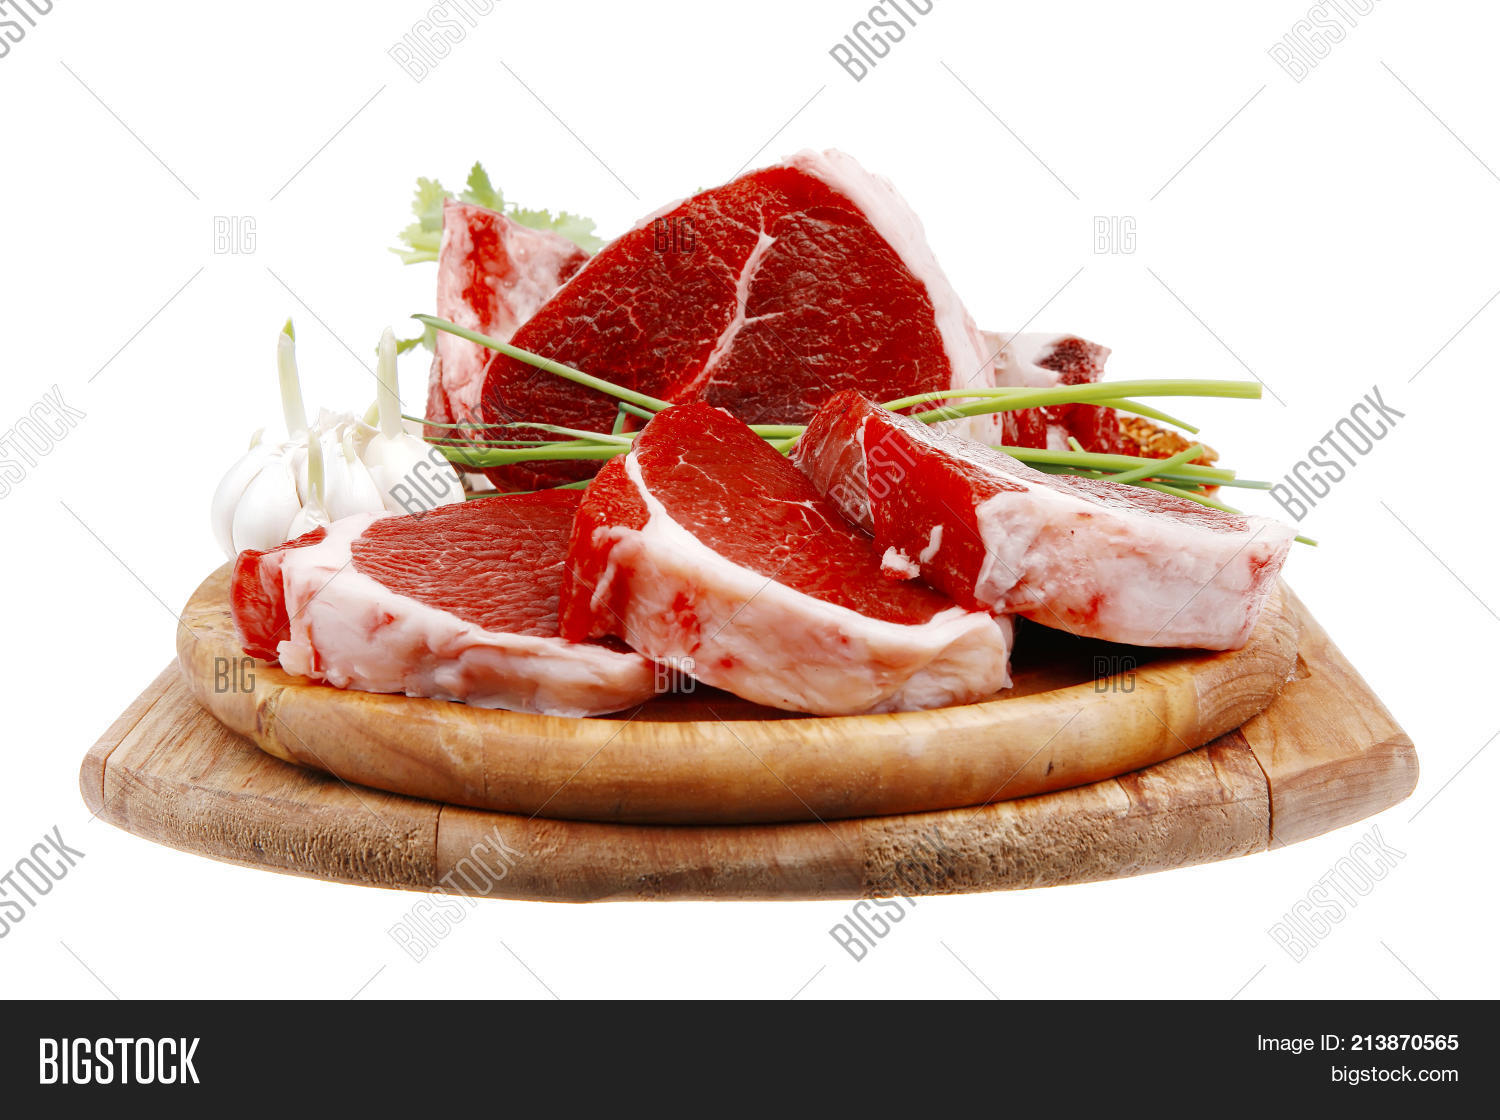 Fresh Meat : Raw Image & Photo (Free Trial) | Bigstock